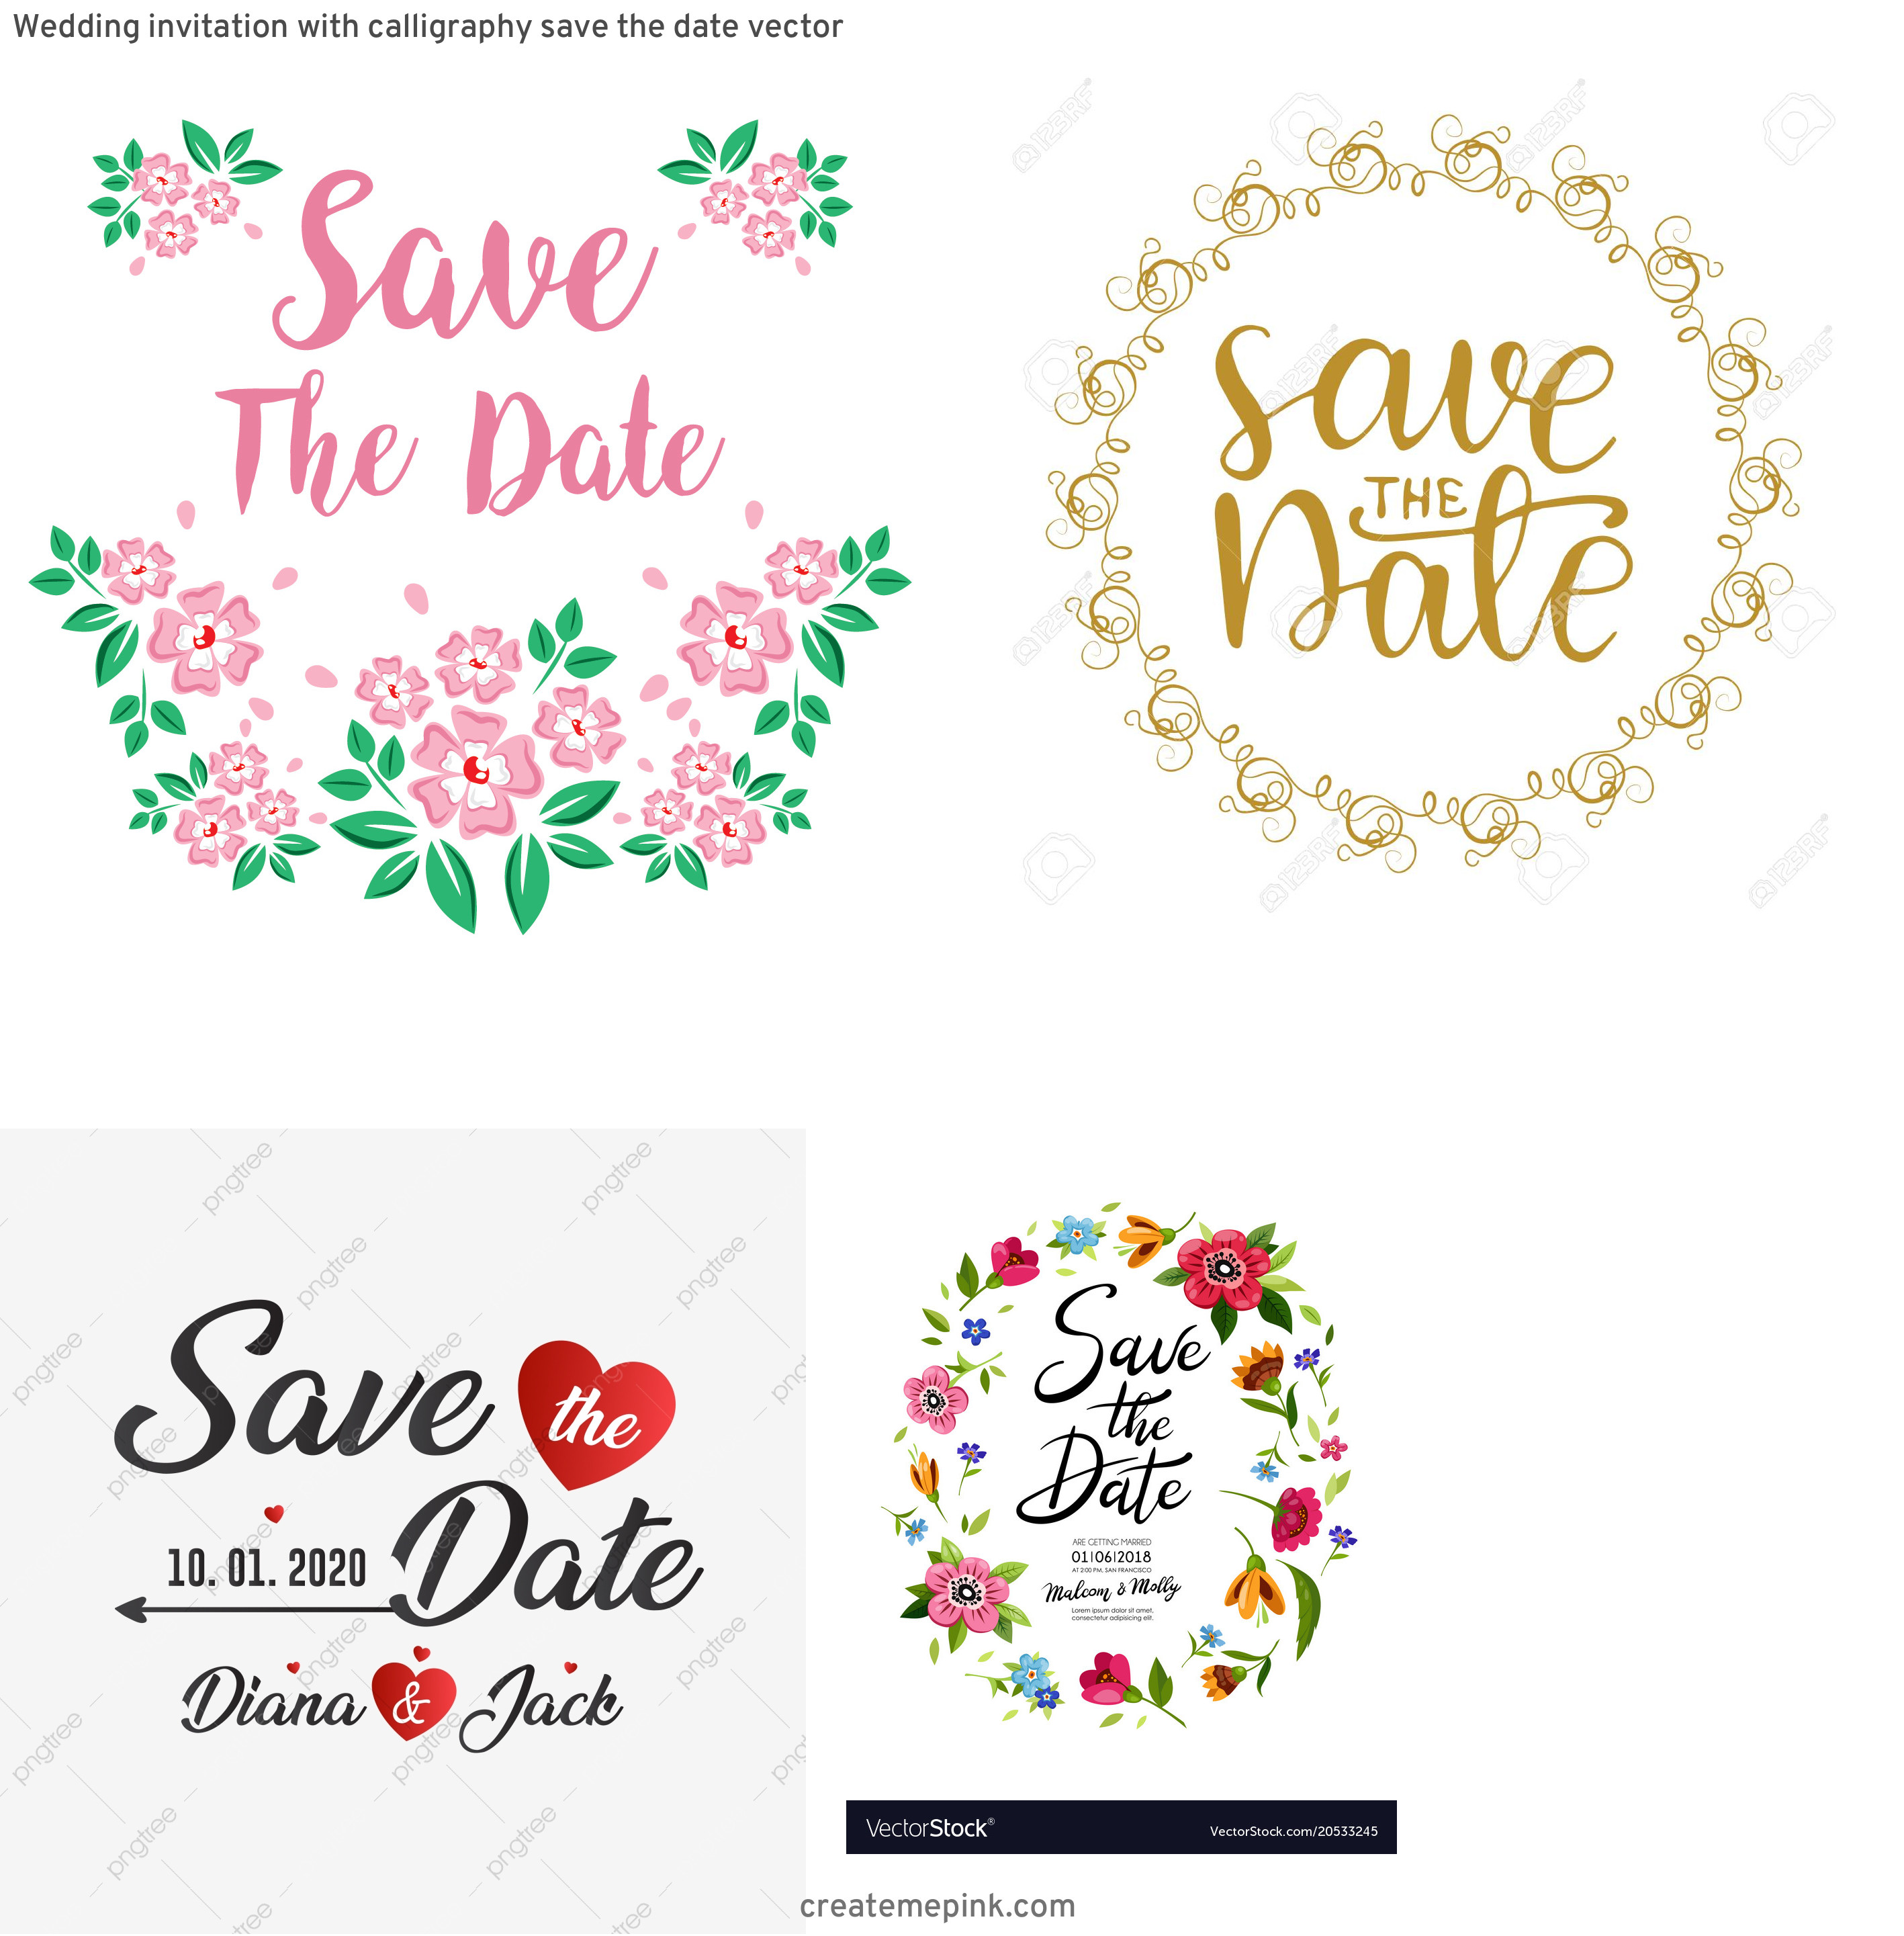 Save The Date Vector: Wedding Invitation With Calligraphy Save The Date Vector